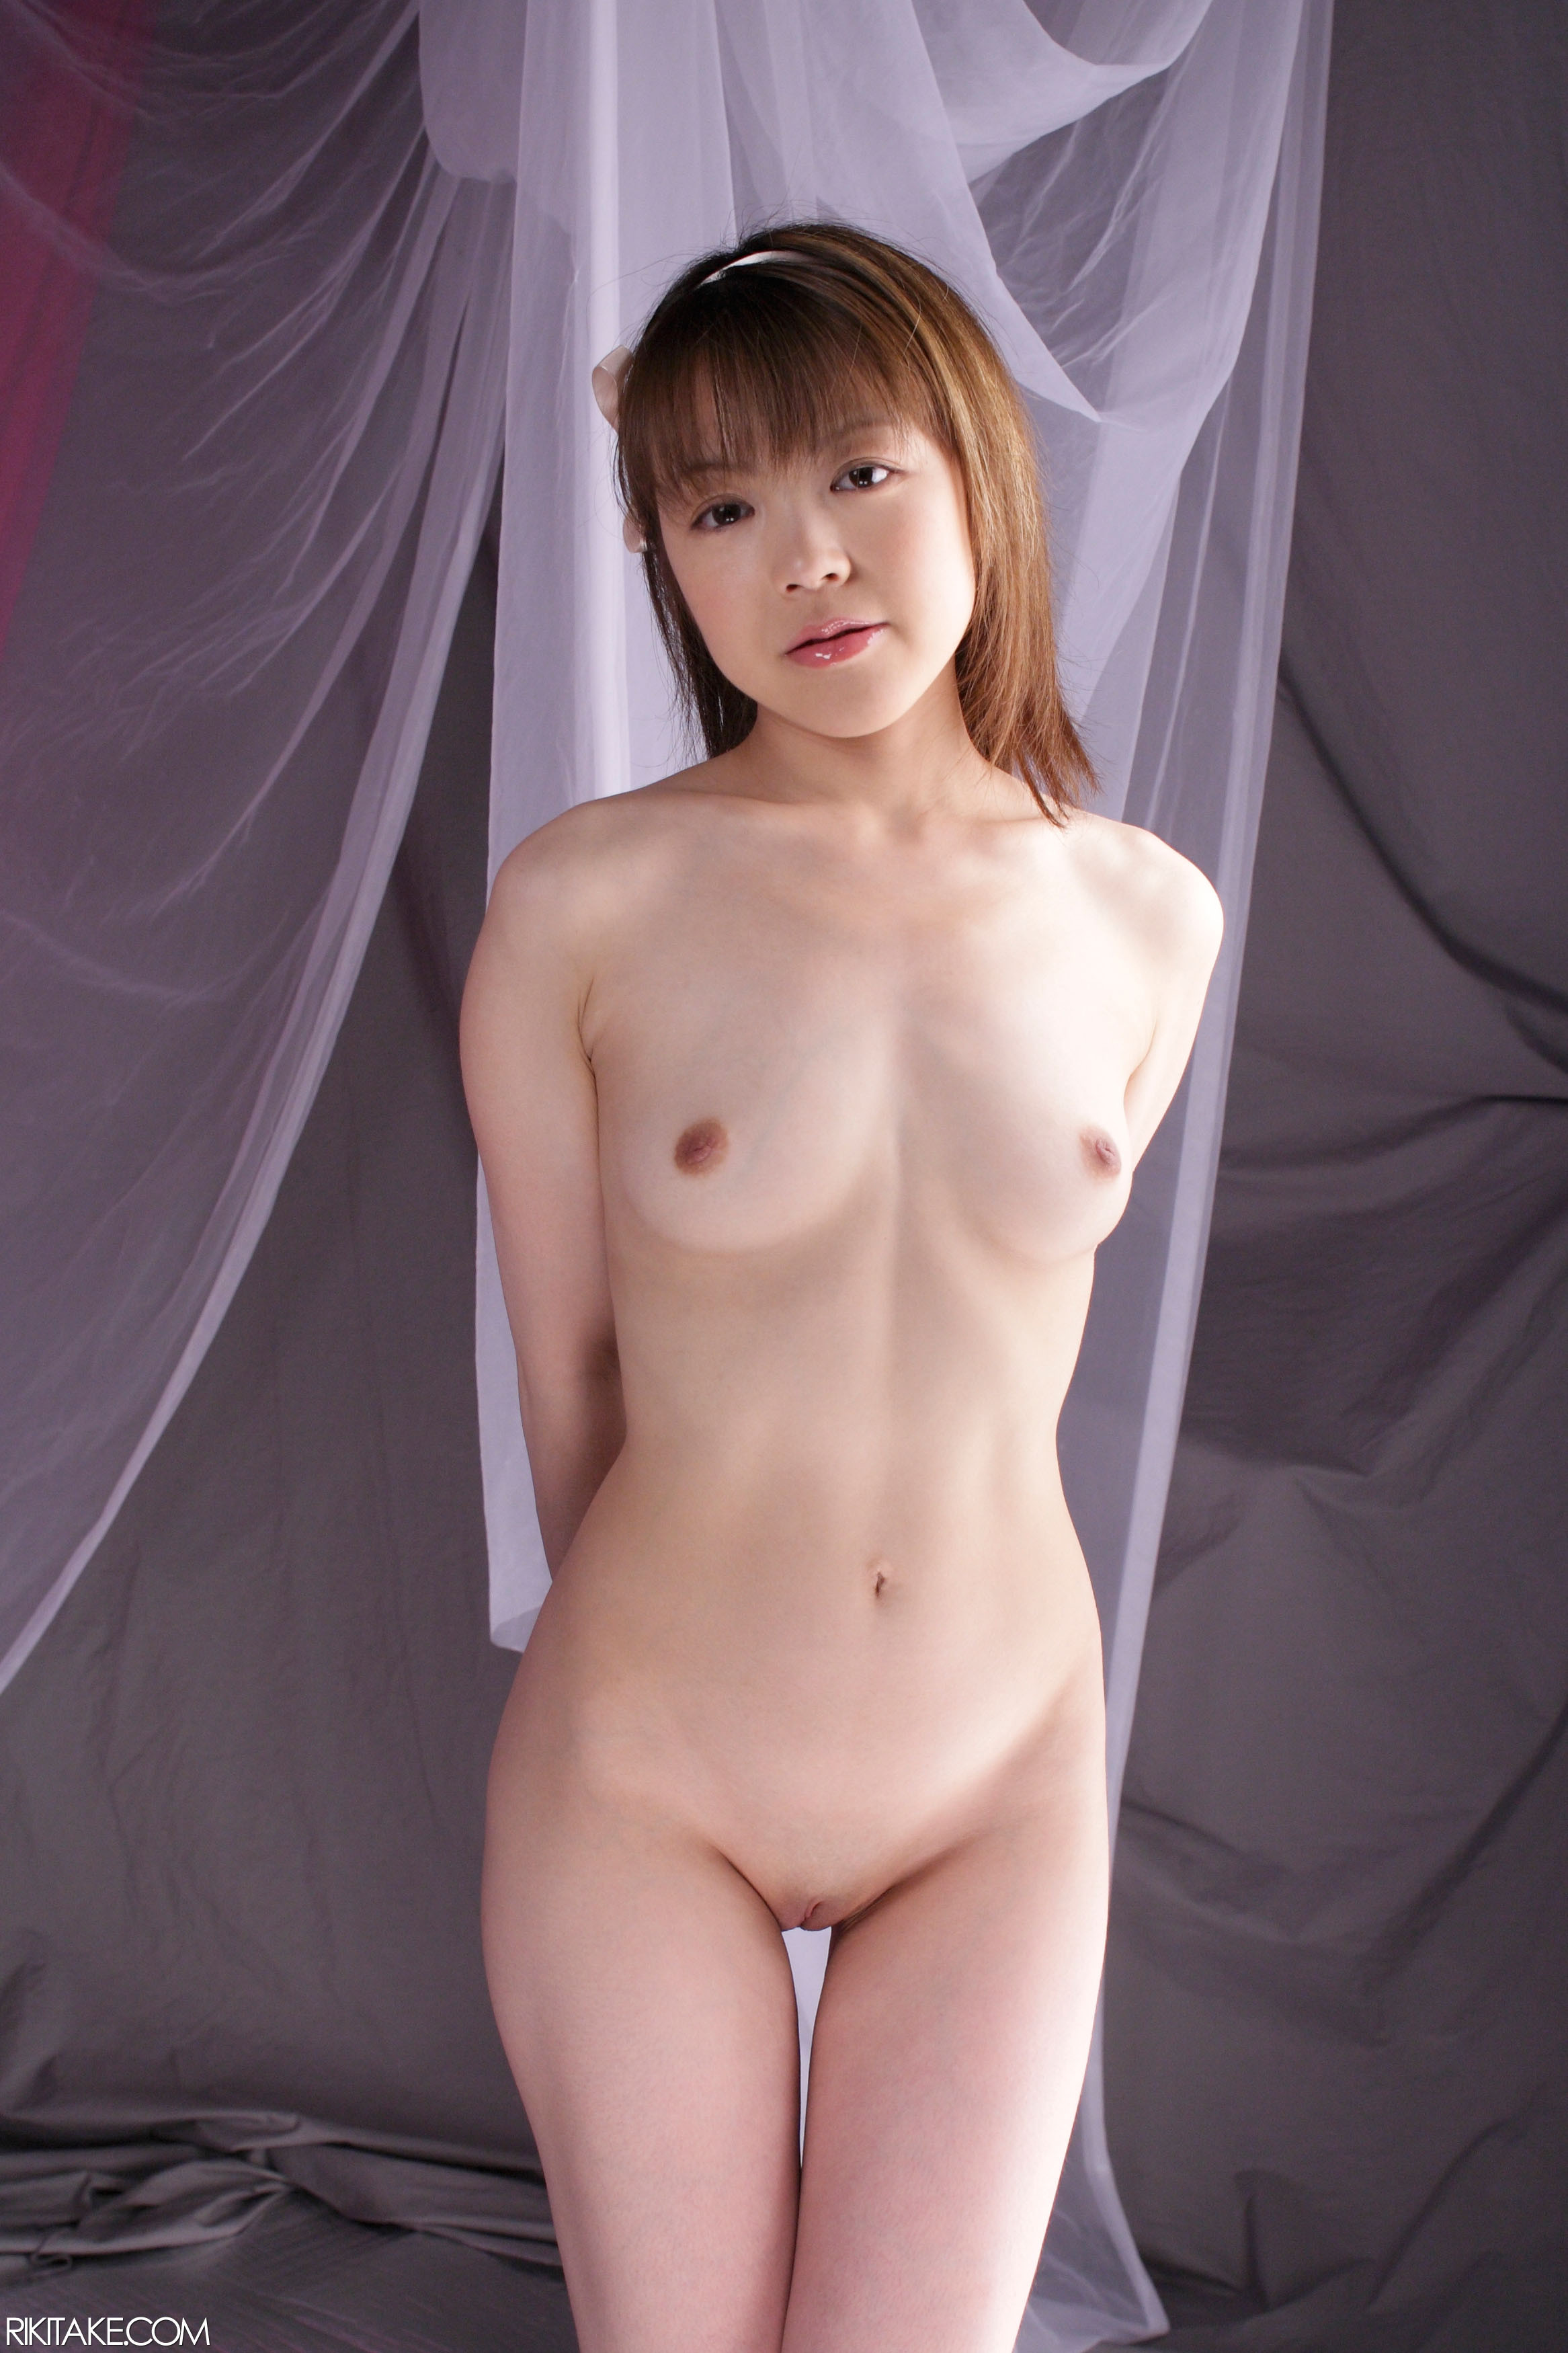 61 rikitake imagesize:2333x3500 Shaved Bottomless Totally Shaved Asian Babe with Coin Slot ...